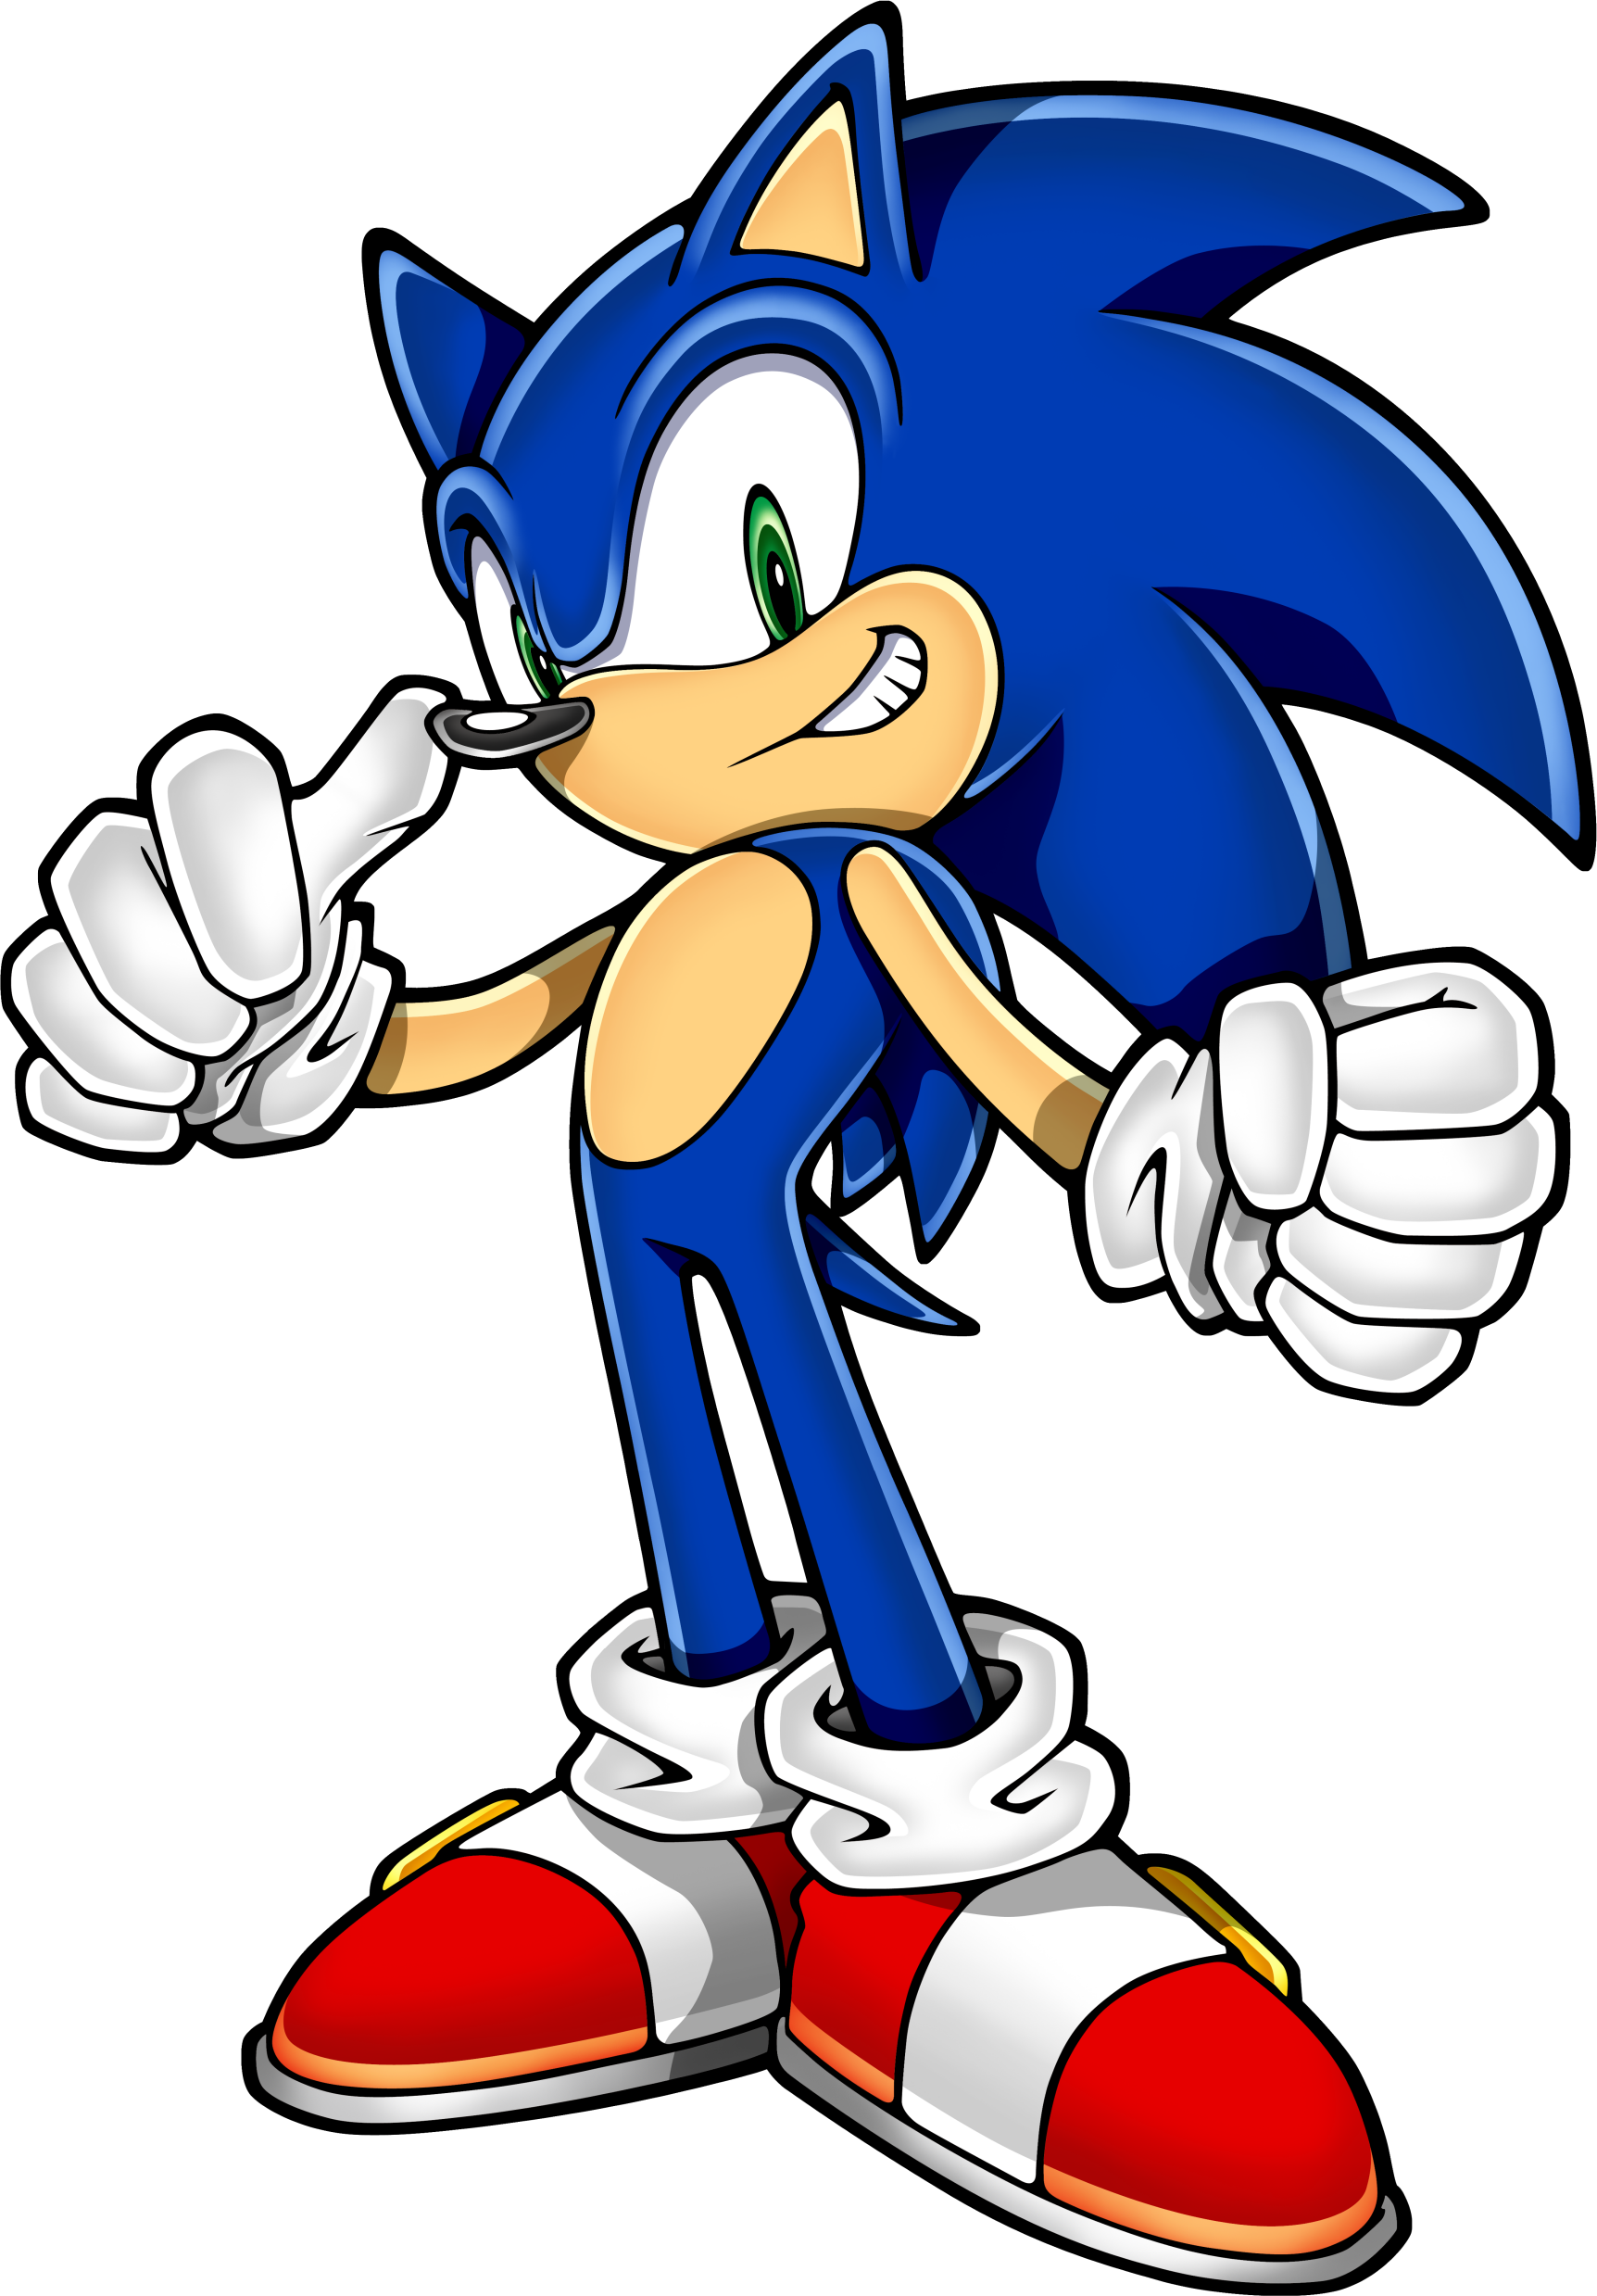 Hedgehog clipart happy birthday. The golden mean is